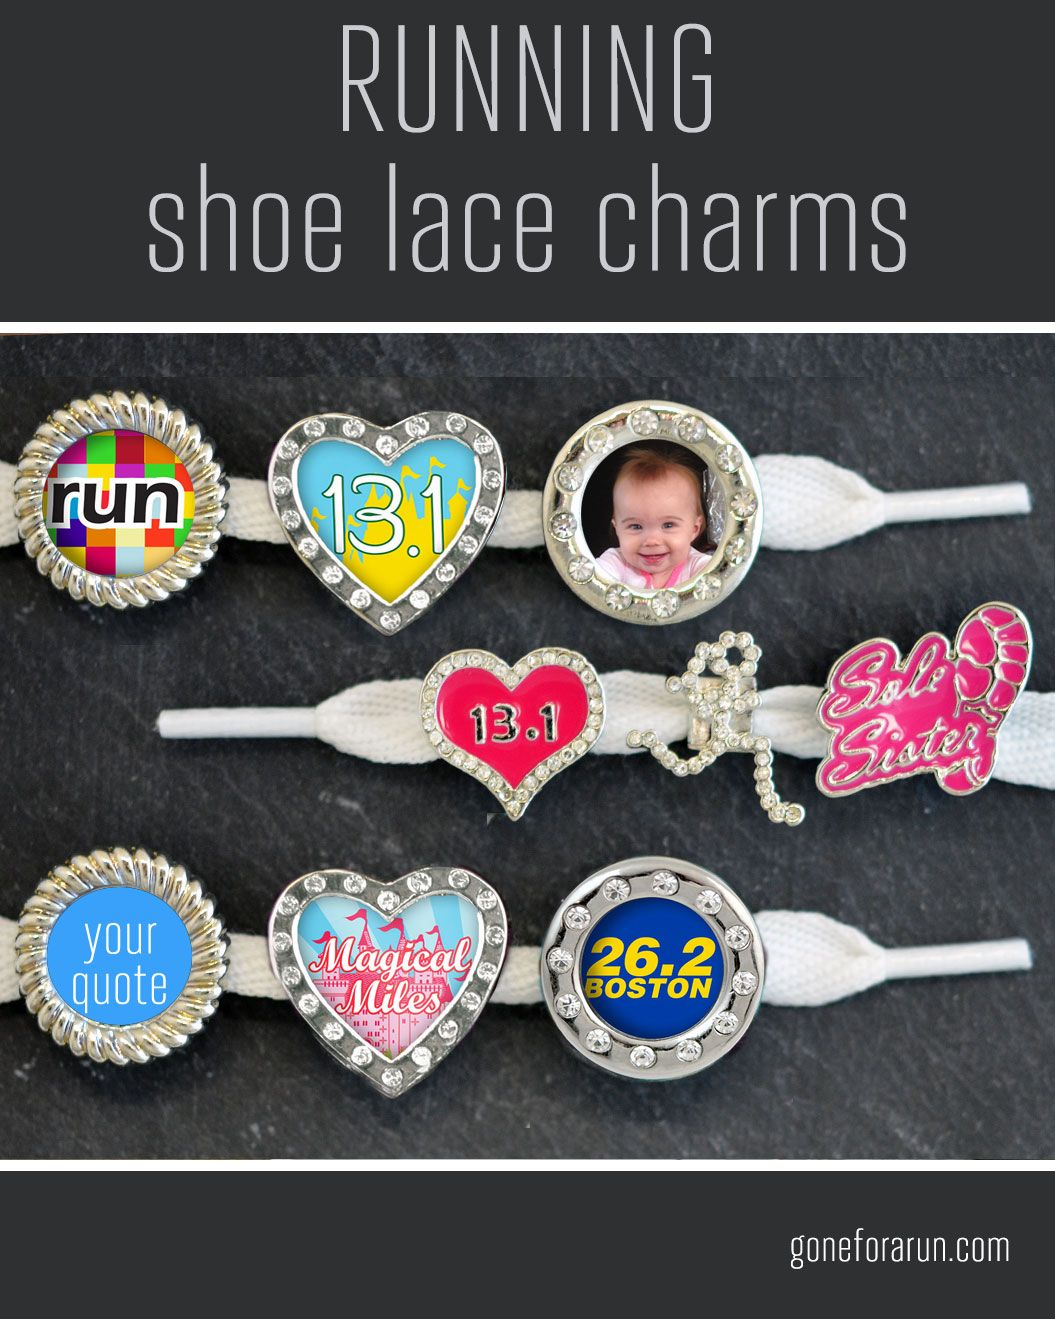 Running shoe lace charms. Largest selection and highest quality shoe  charms. Motivational and inspirational